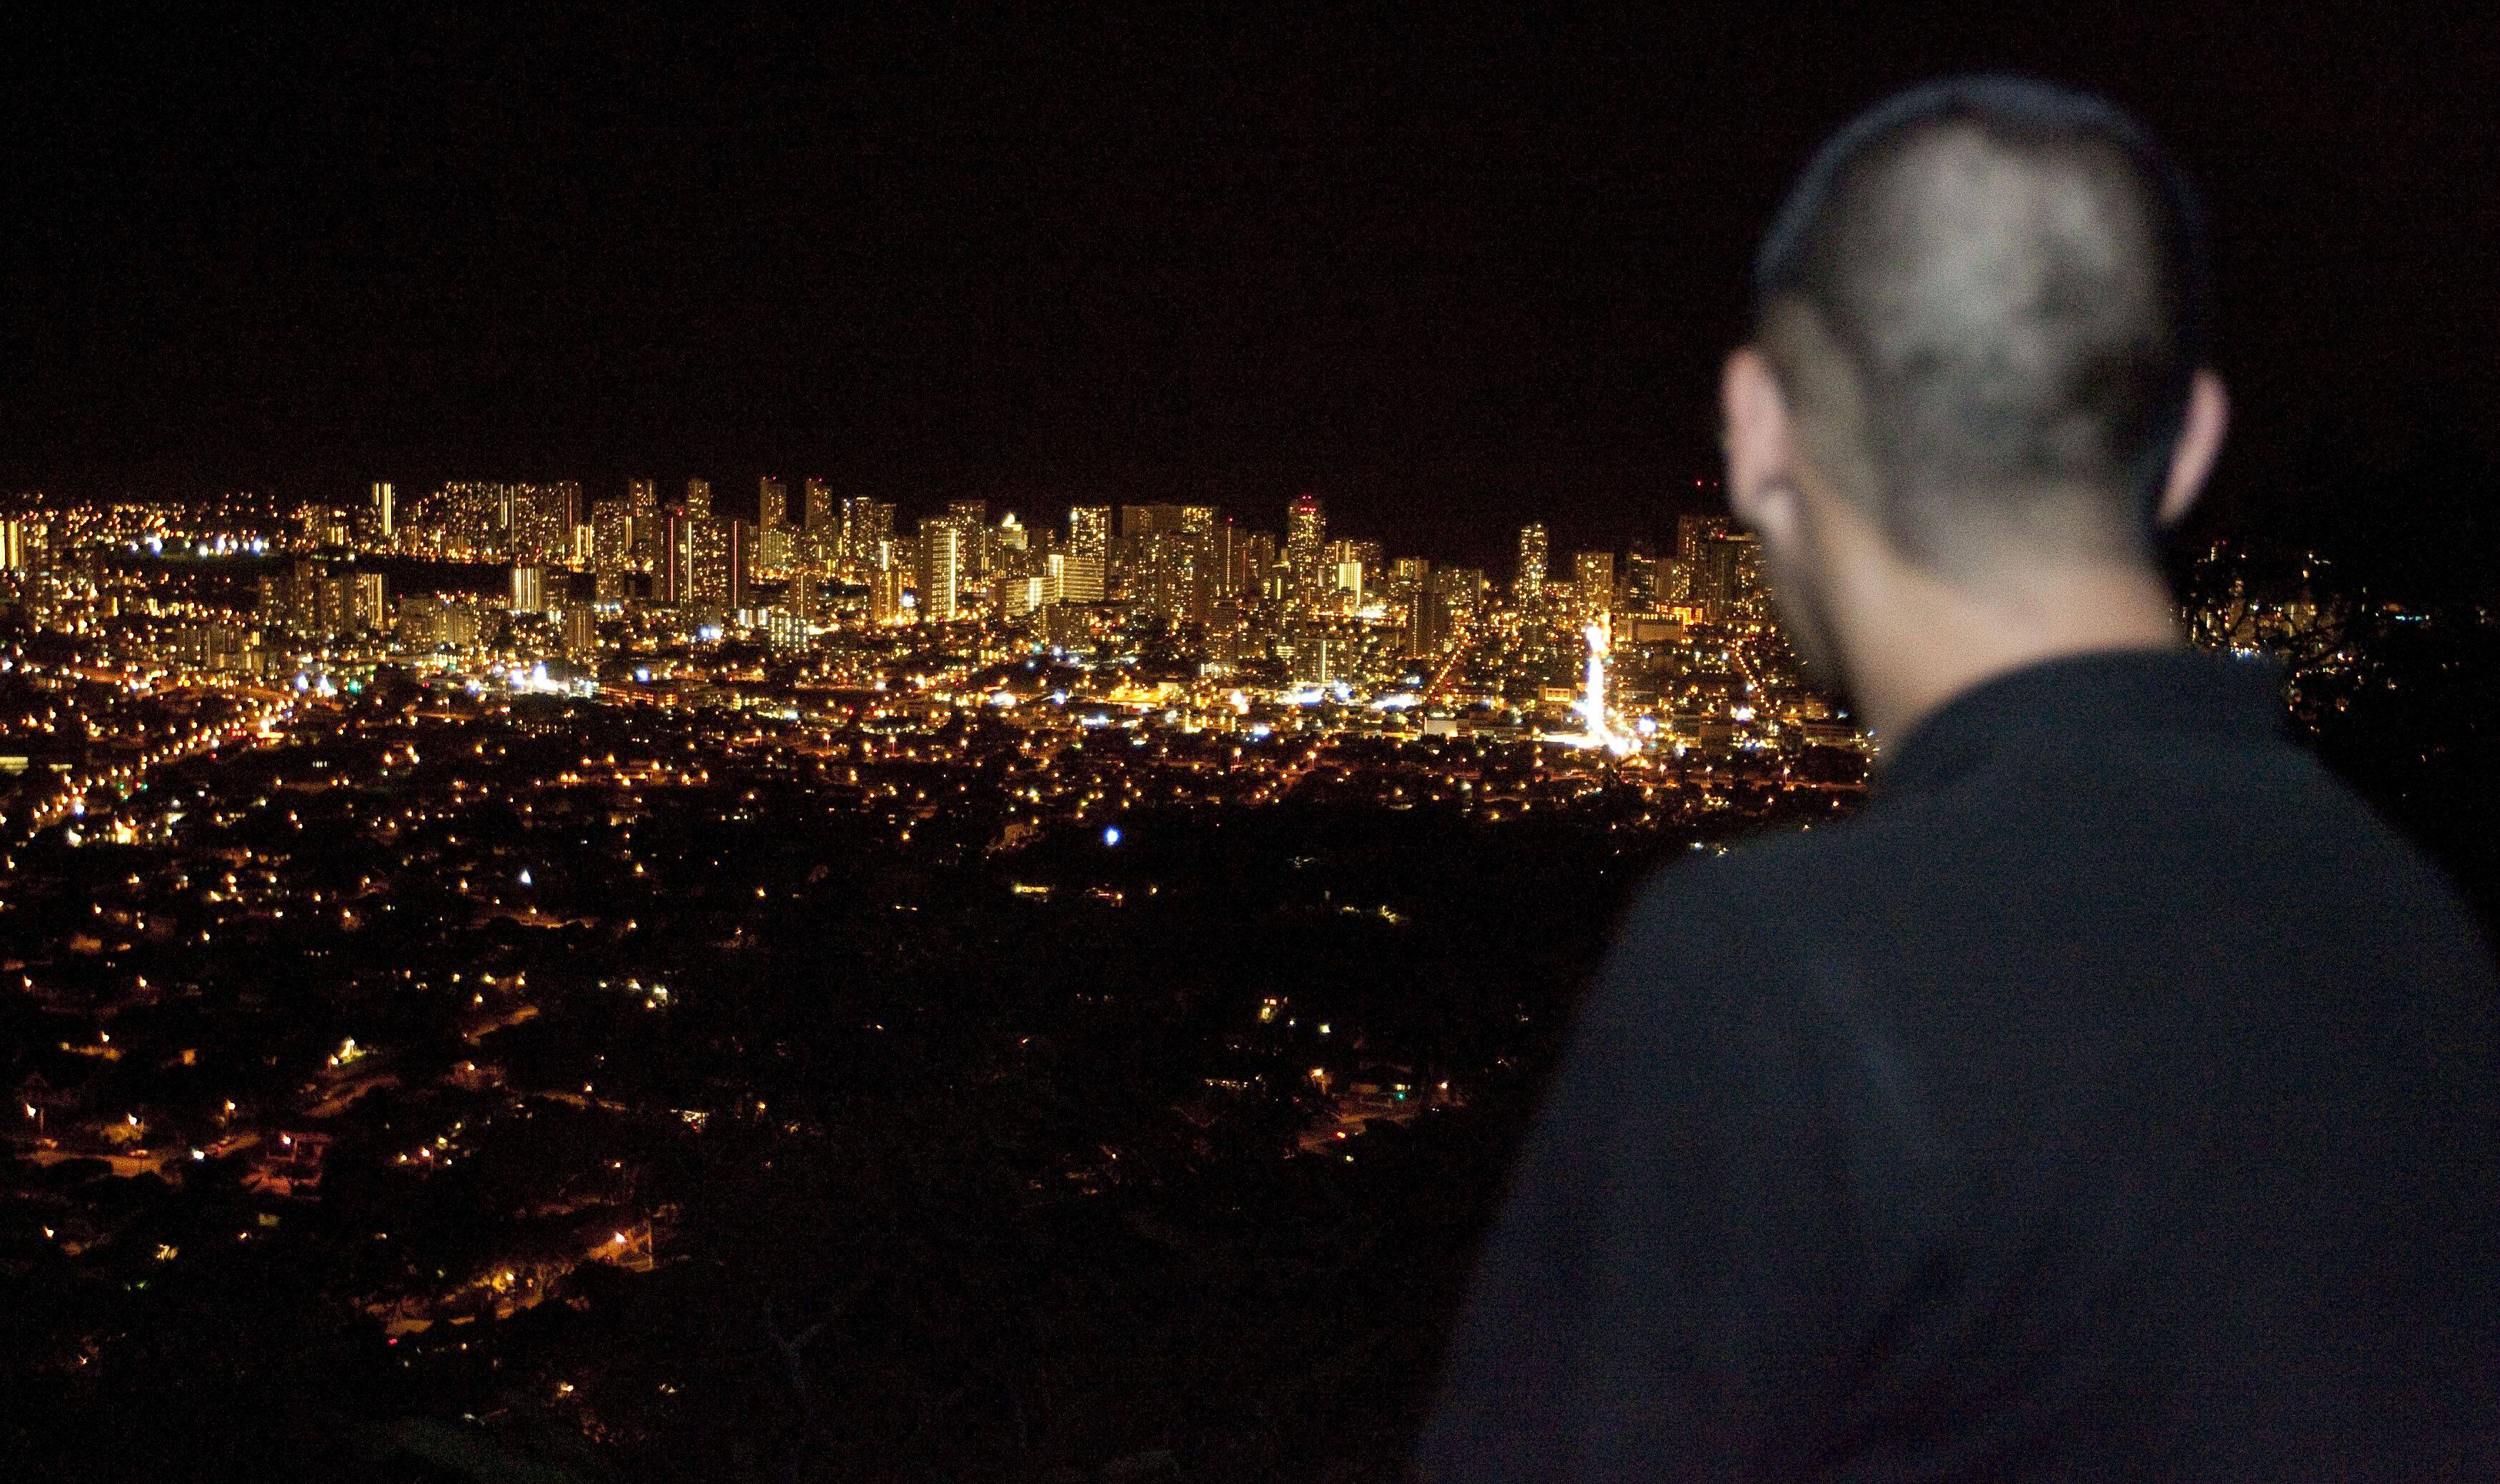 Dain Okimoto looks down on the lights of Waikiki from Tantalus Drive Thursday, March 10, 2011 in Honolulu. Okimoto along with thousands of Oahu residents evacuated to higher ground due to a tsunami warning for the state of Hawaii.,